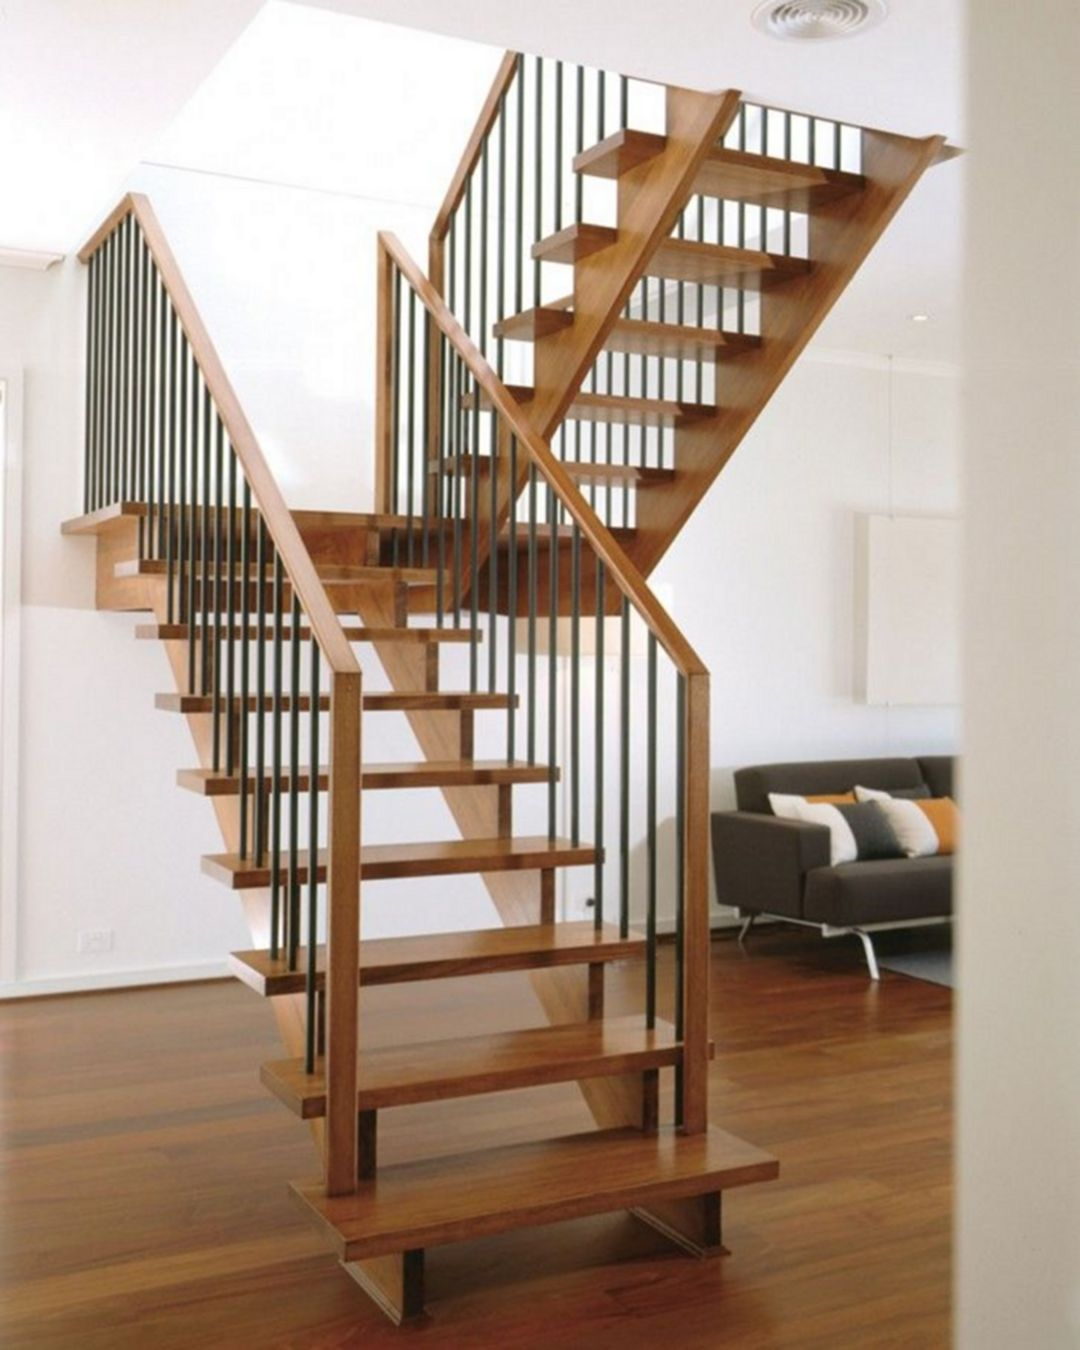 20+ Stunning Basement Stair Design Ideas You Have To Know